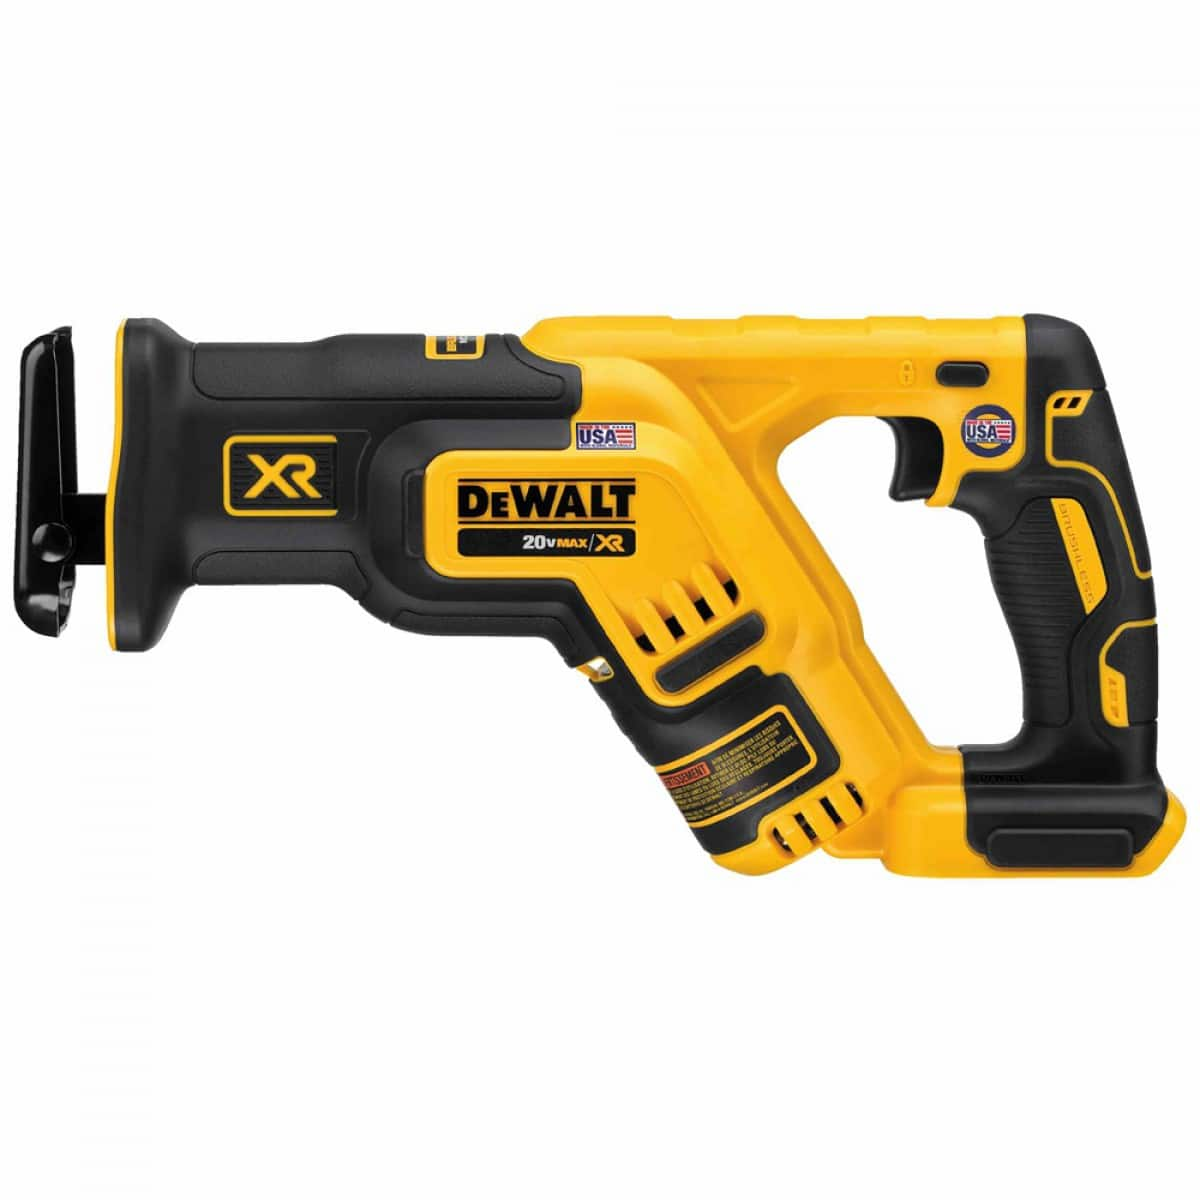 DeWalt DCS367B 20V MAX XR Brushless Compact Reciprocating Saw, ToolDeWalt DCS367B 20V MAX XR Brushless Compact Reciprocating Saw + 5ah battery $139, free shipping